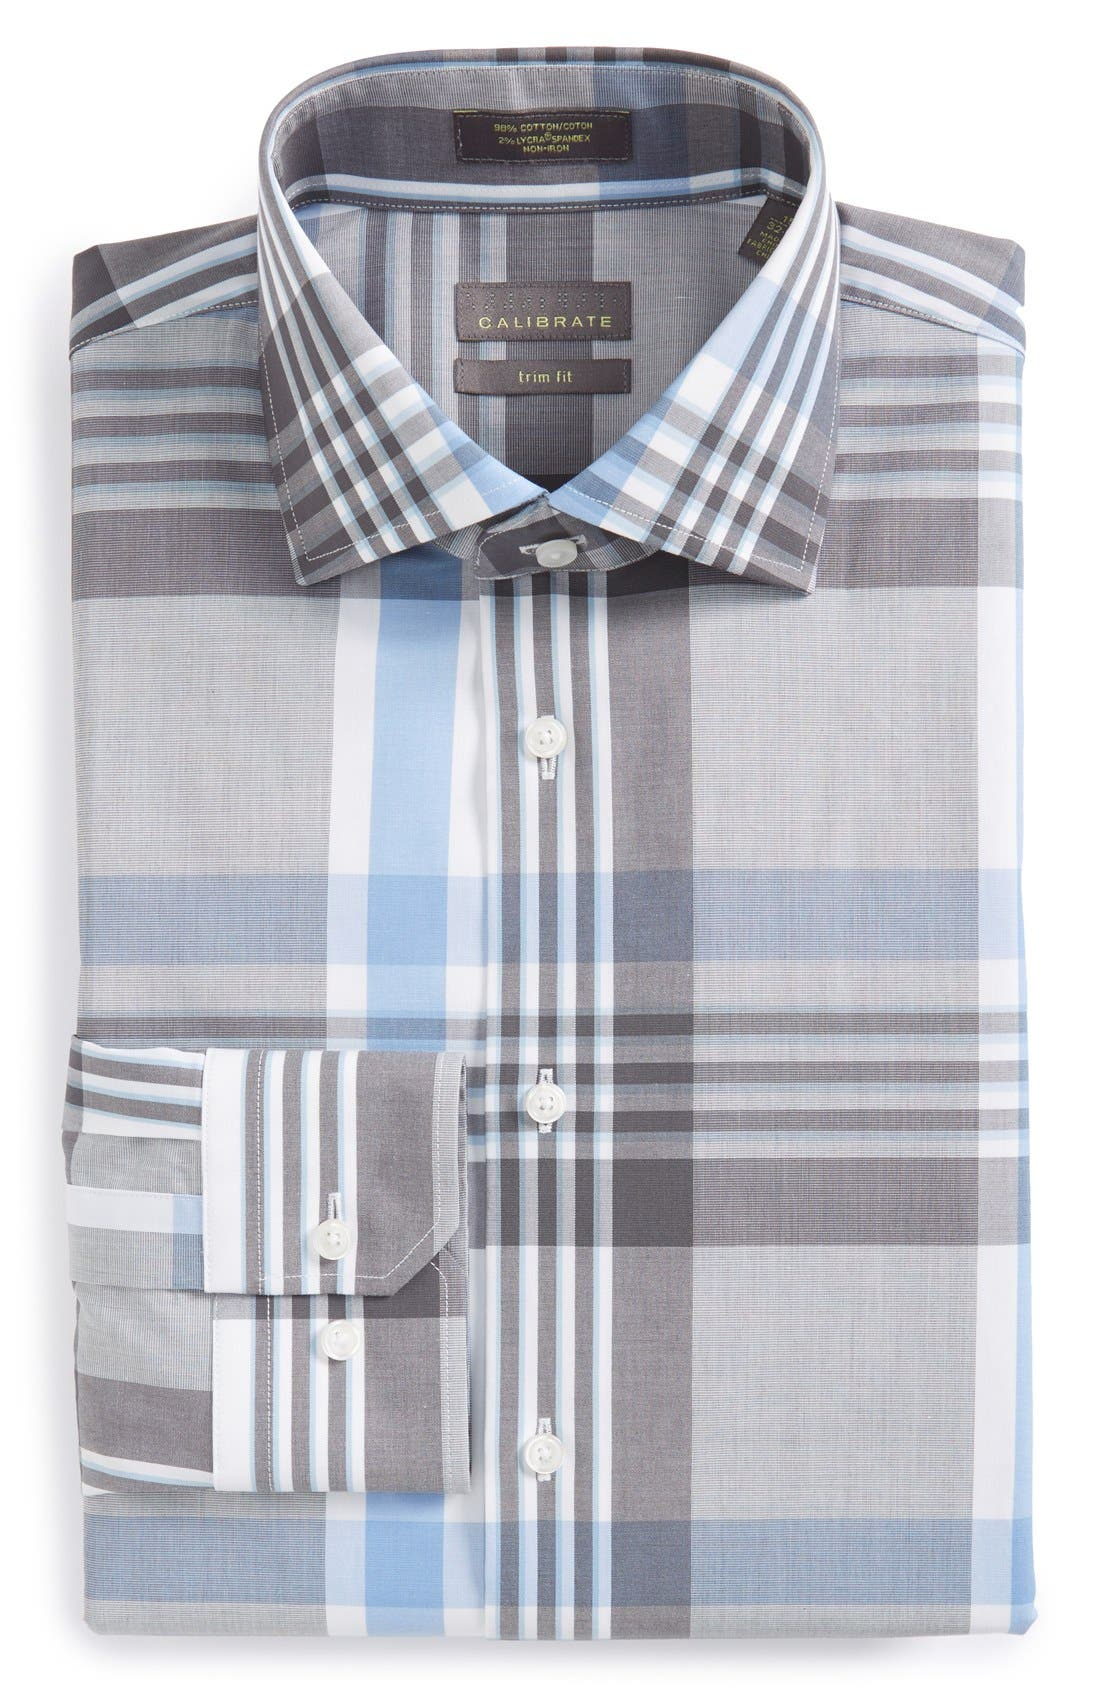 Alternate Image 1 Selected - Calibrate Trim Fit Non-Iron Plaid Dress Shirt